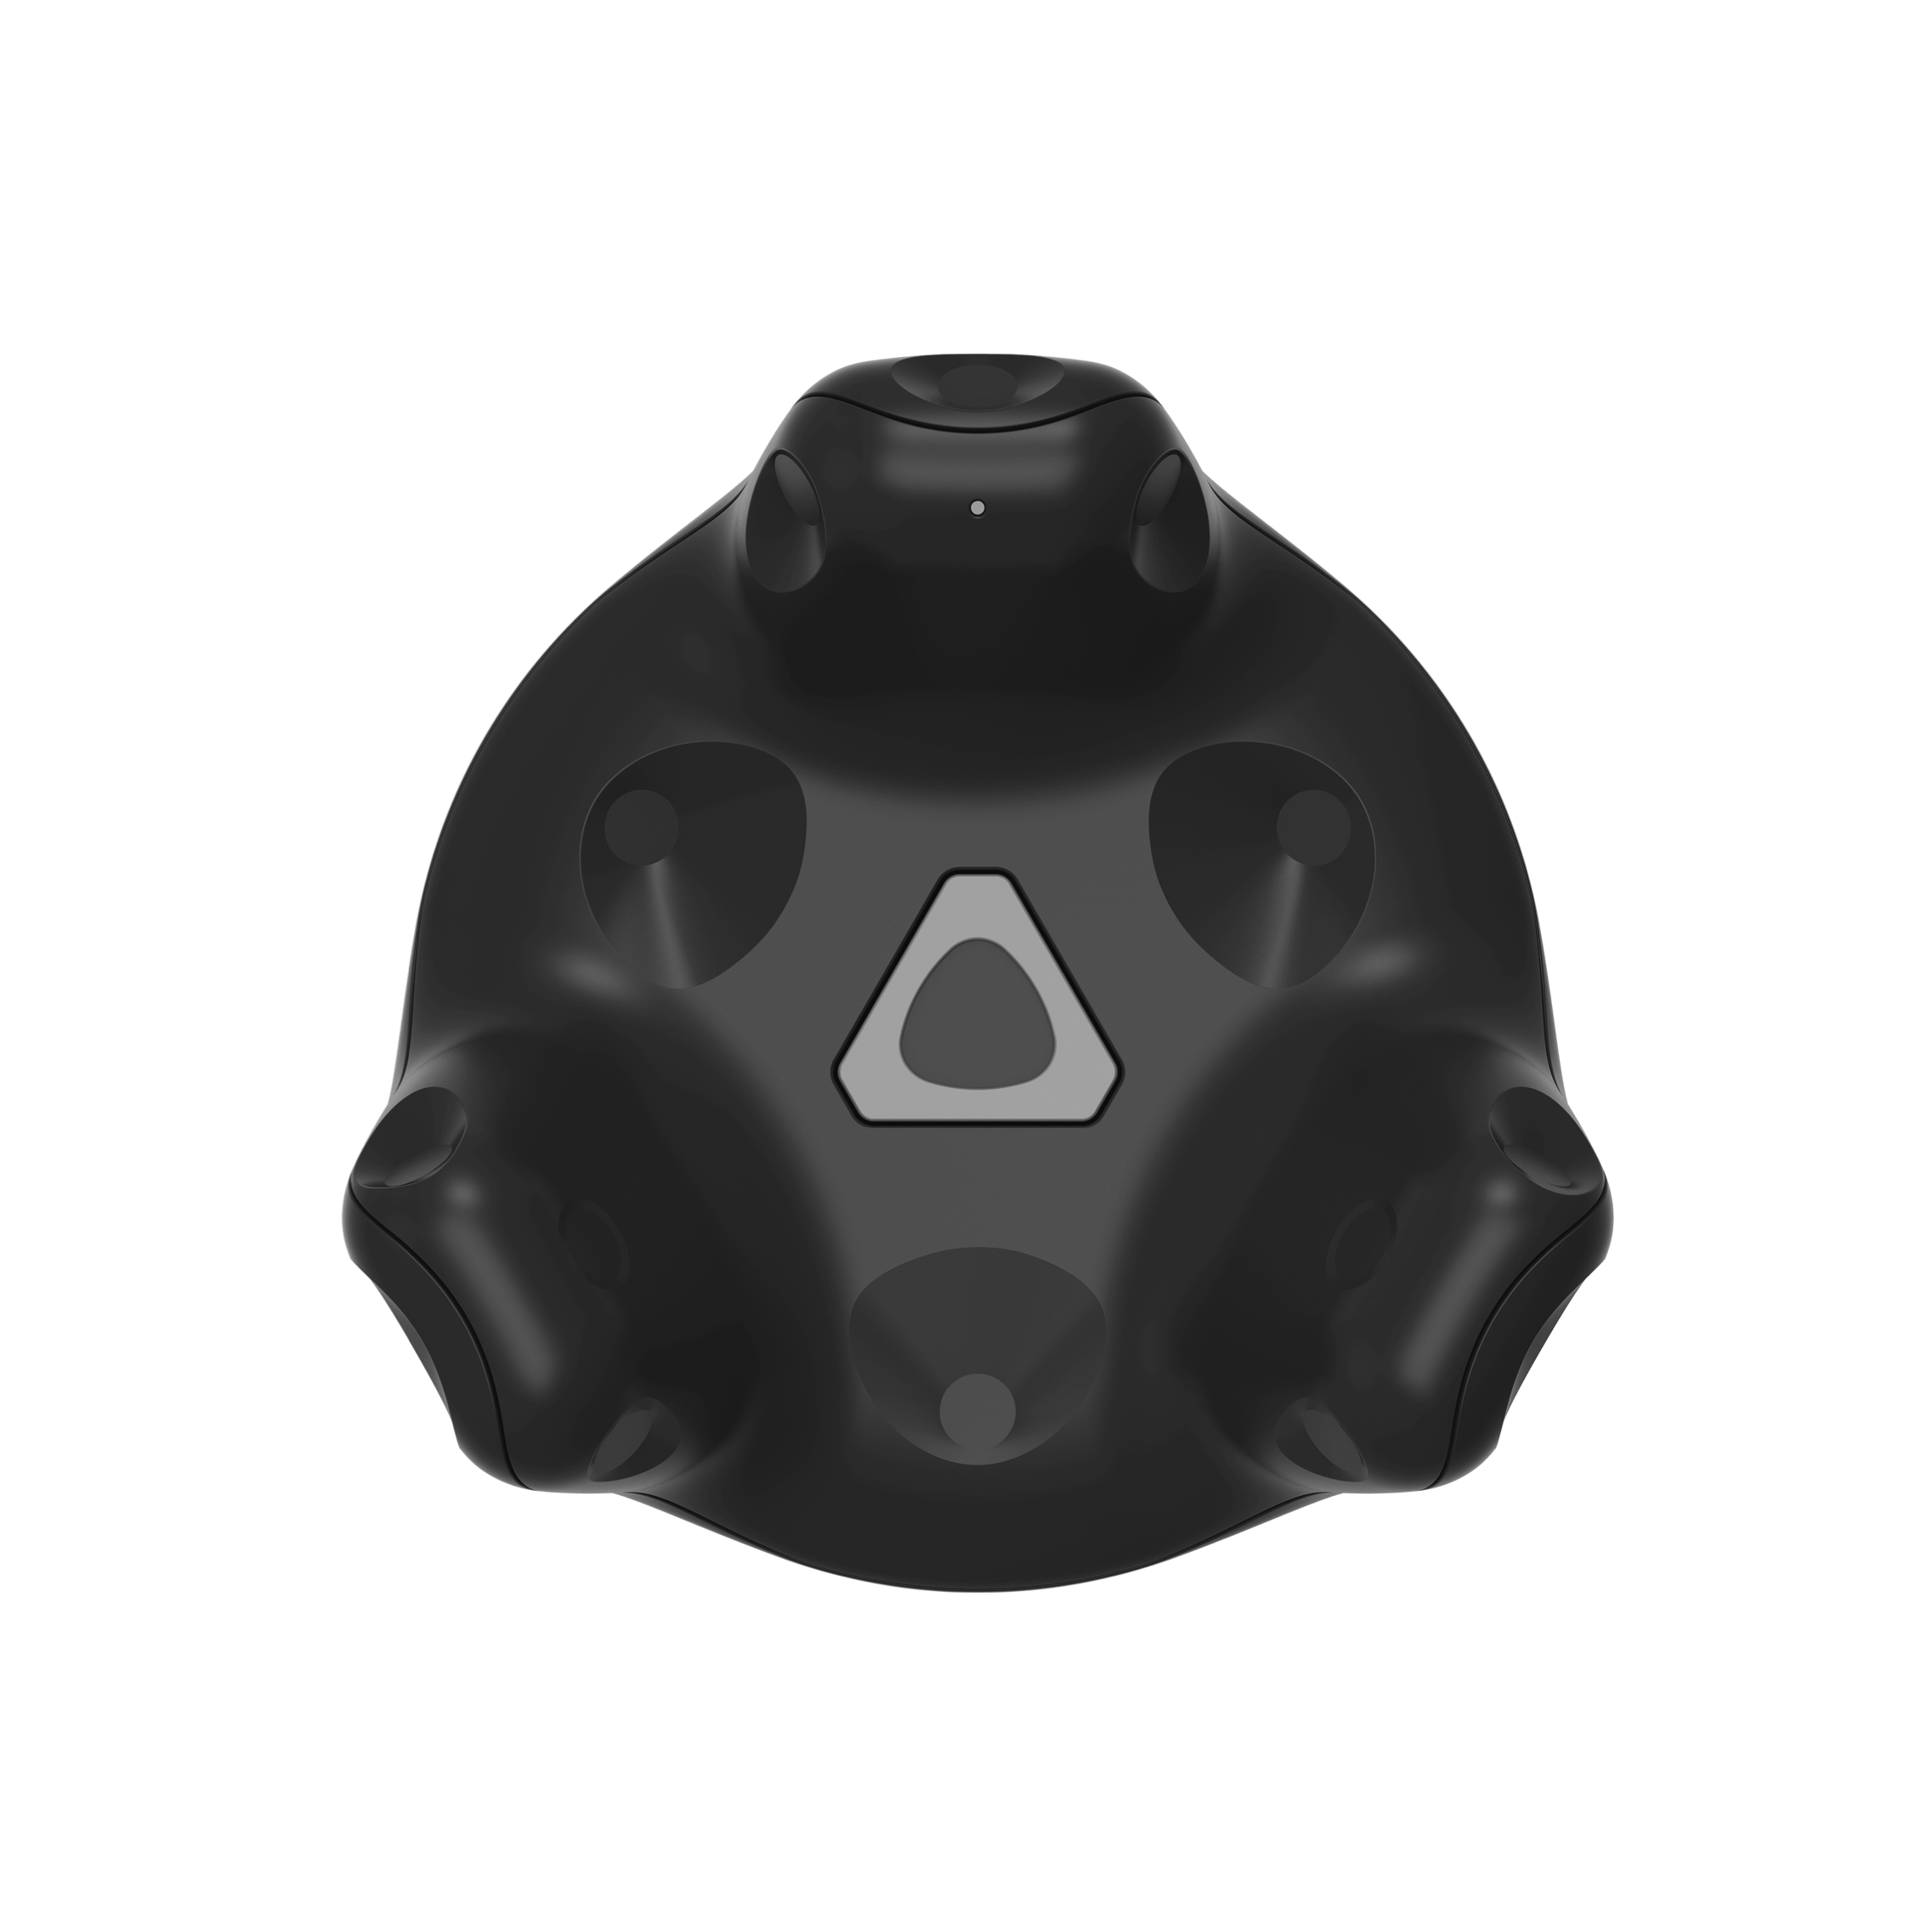 HTC's new Vive Tracker can turn anything into a VR controller - The